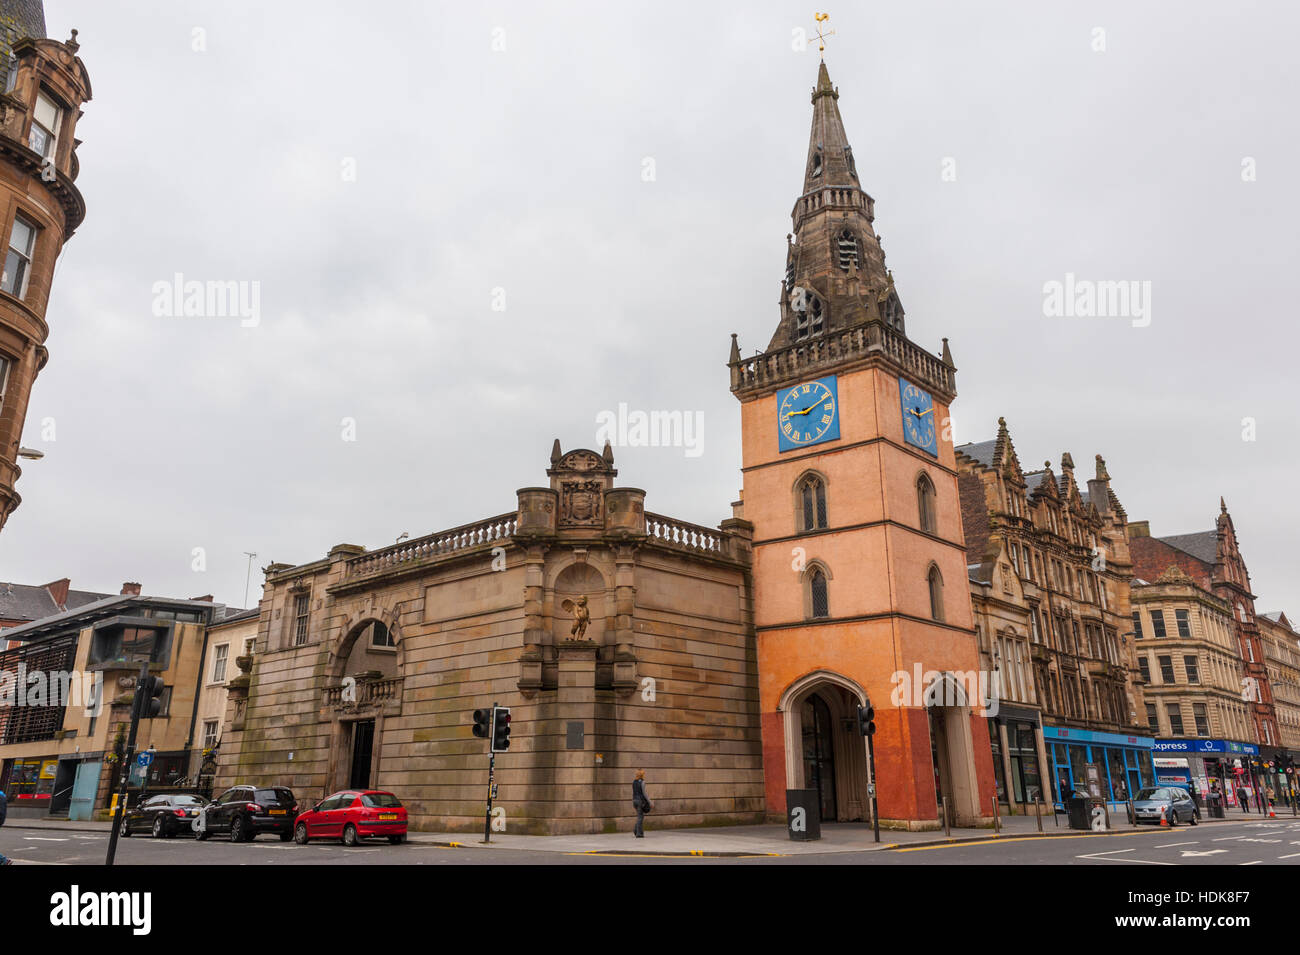 The Tron Church Located in the area of the Merchant City, Glasgow - Stock Image